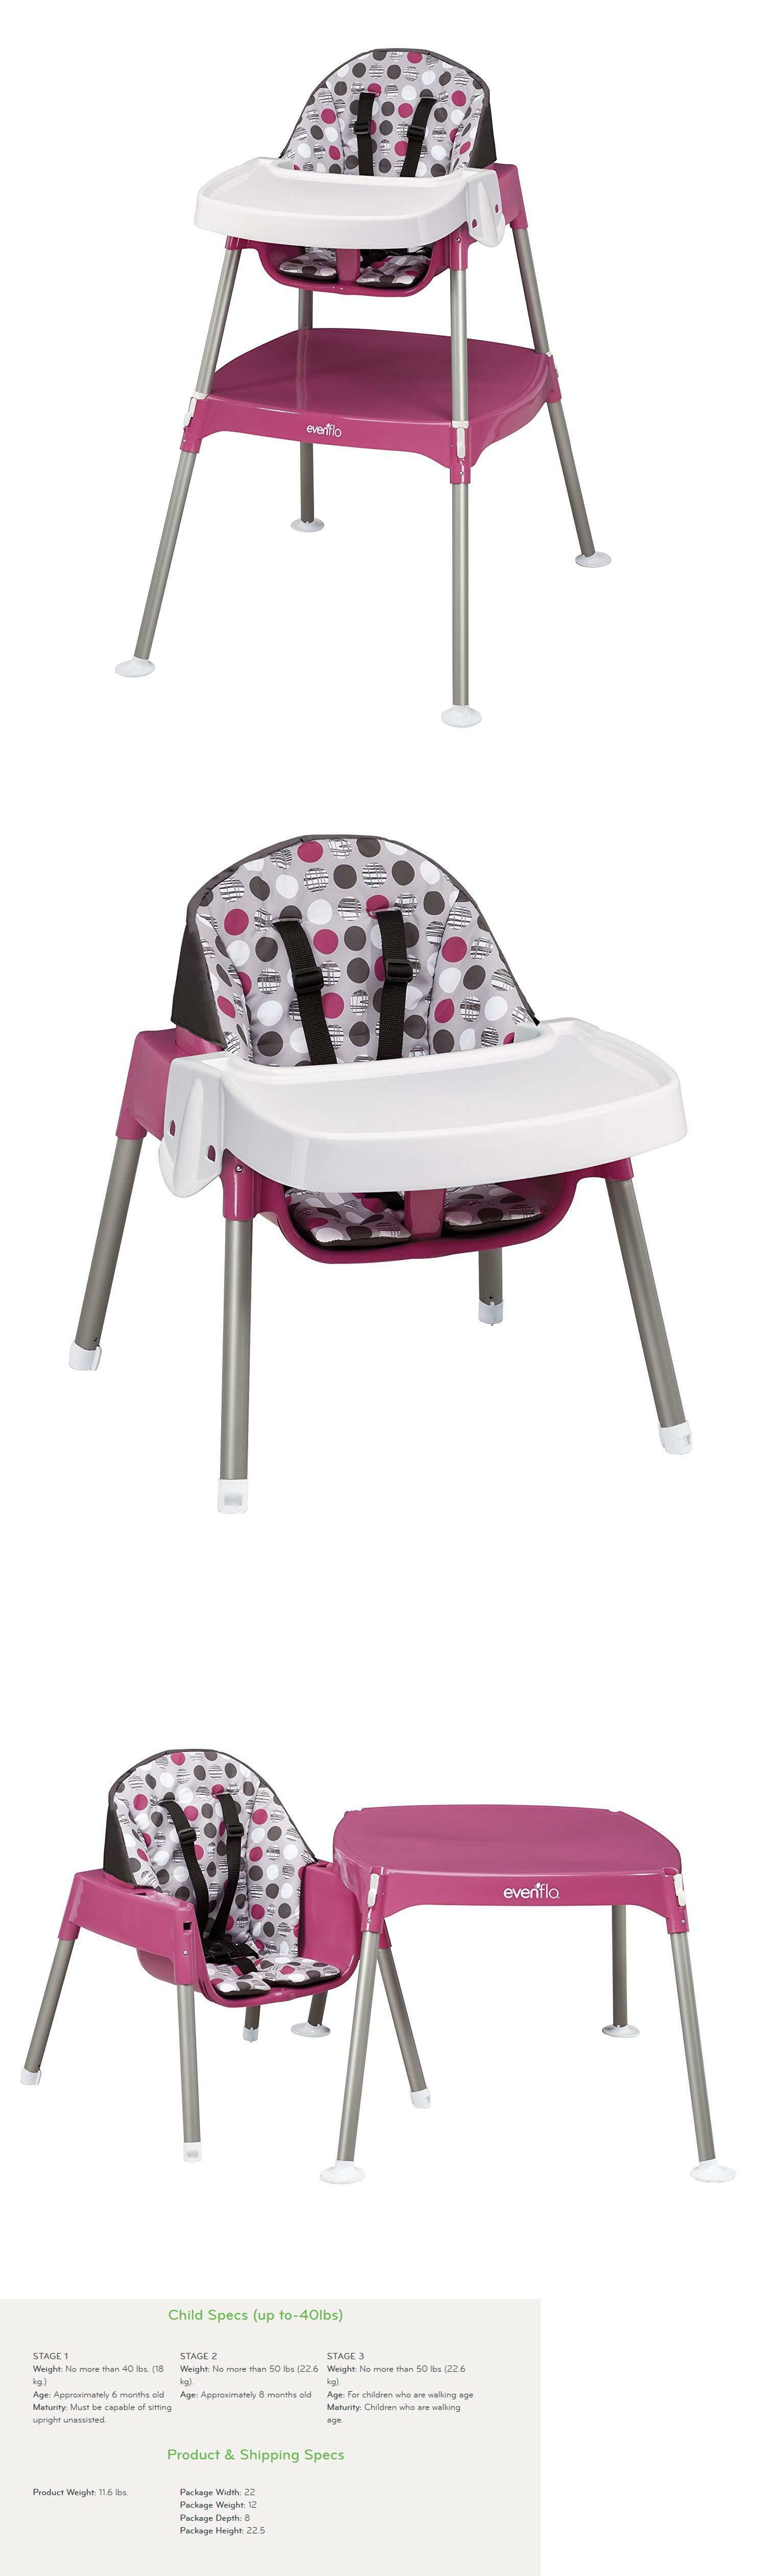 High Chairs 2986 Evenflo Convertible Chair Dottie Rose It Now